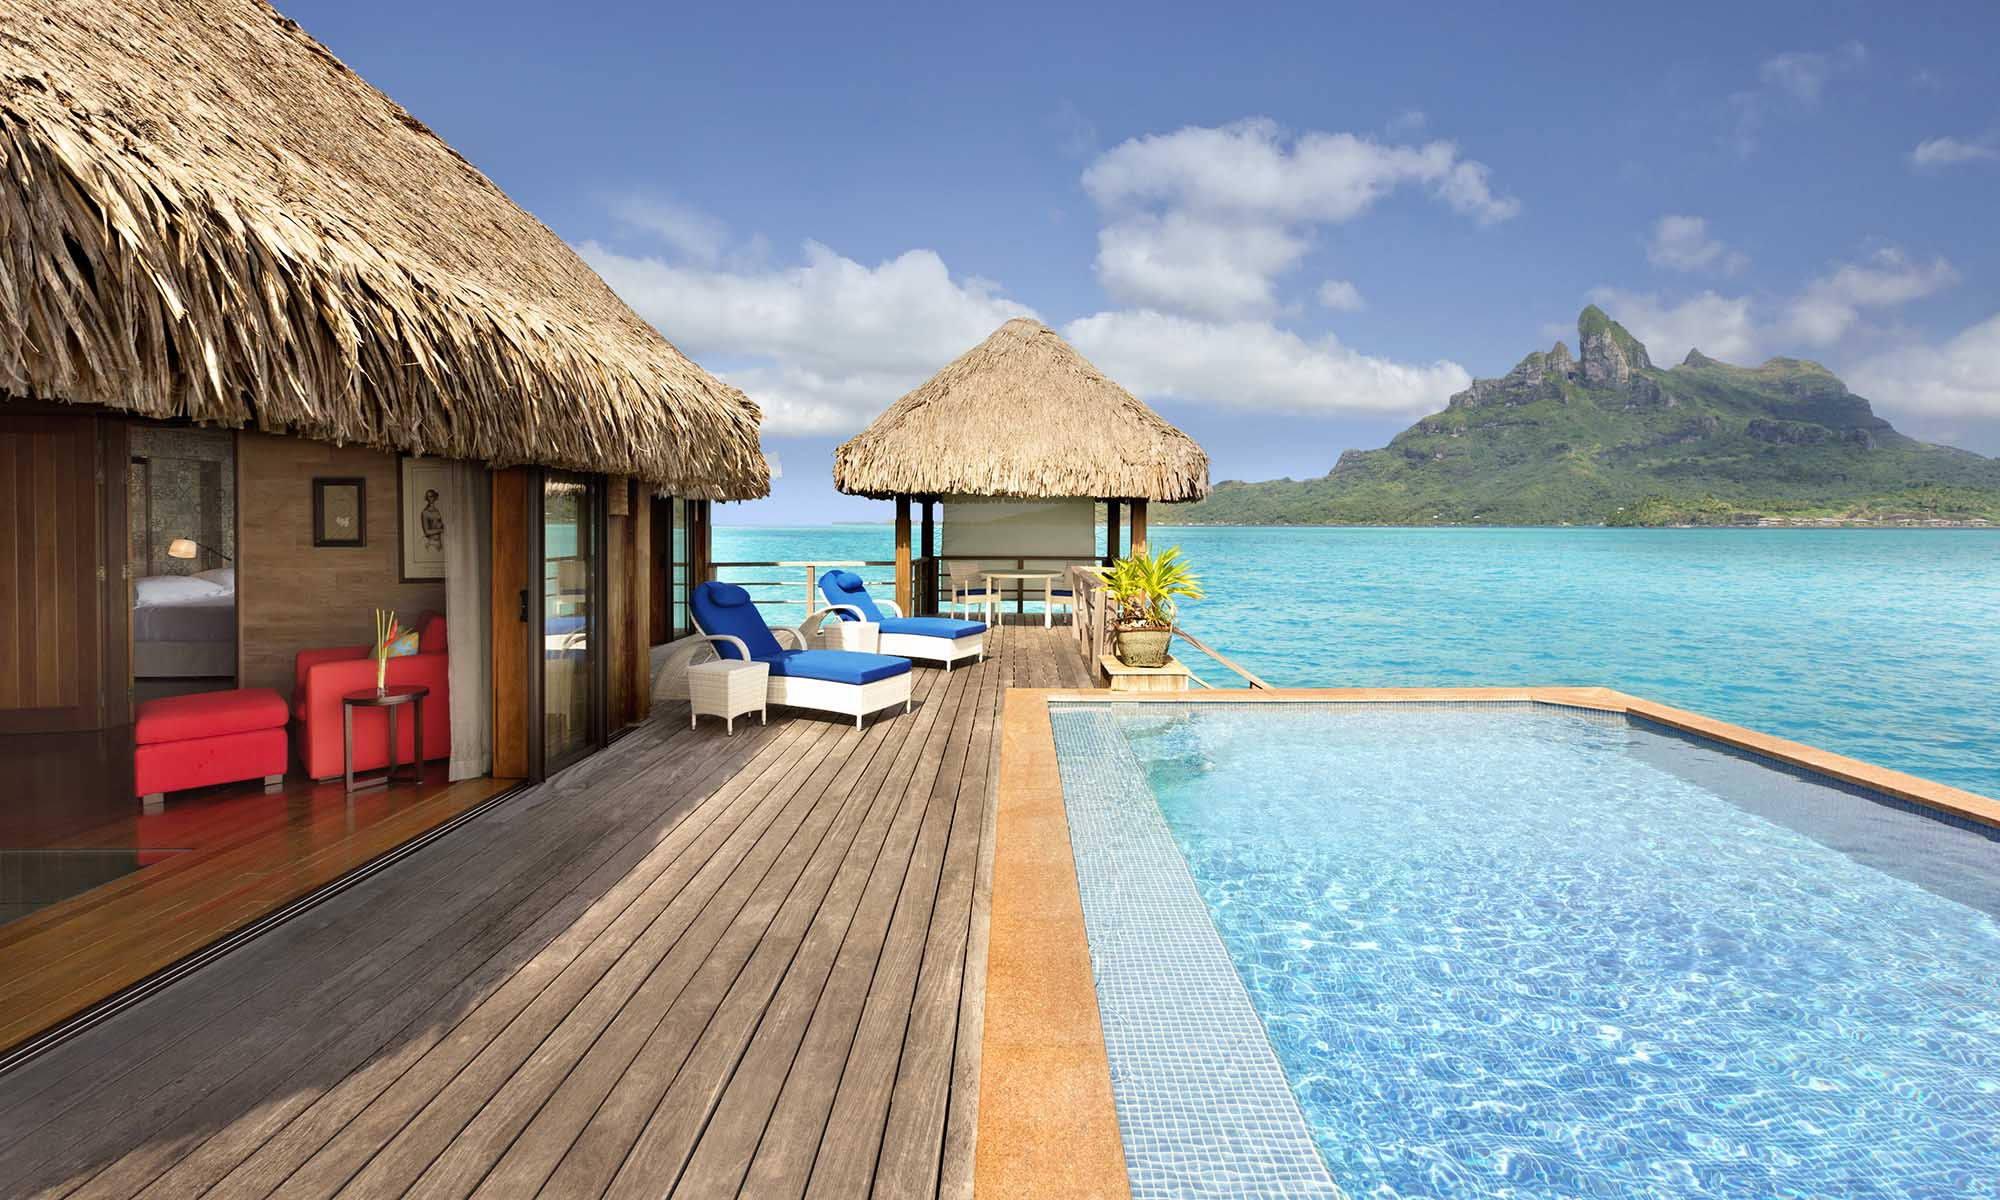 St Regis Bora Bora Resort, Overwater Royal Suite with Pool - Mt. Otemanu View